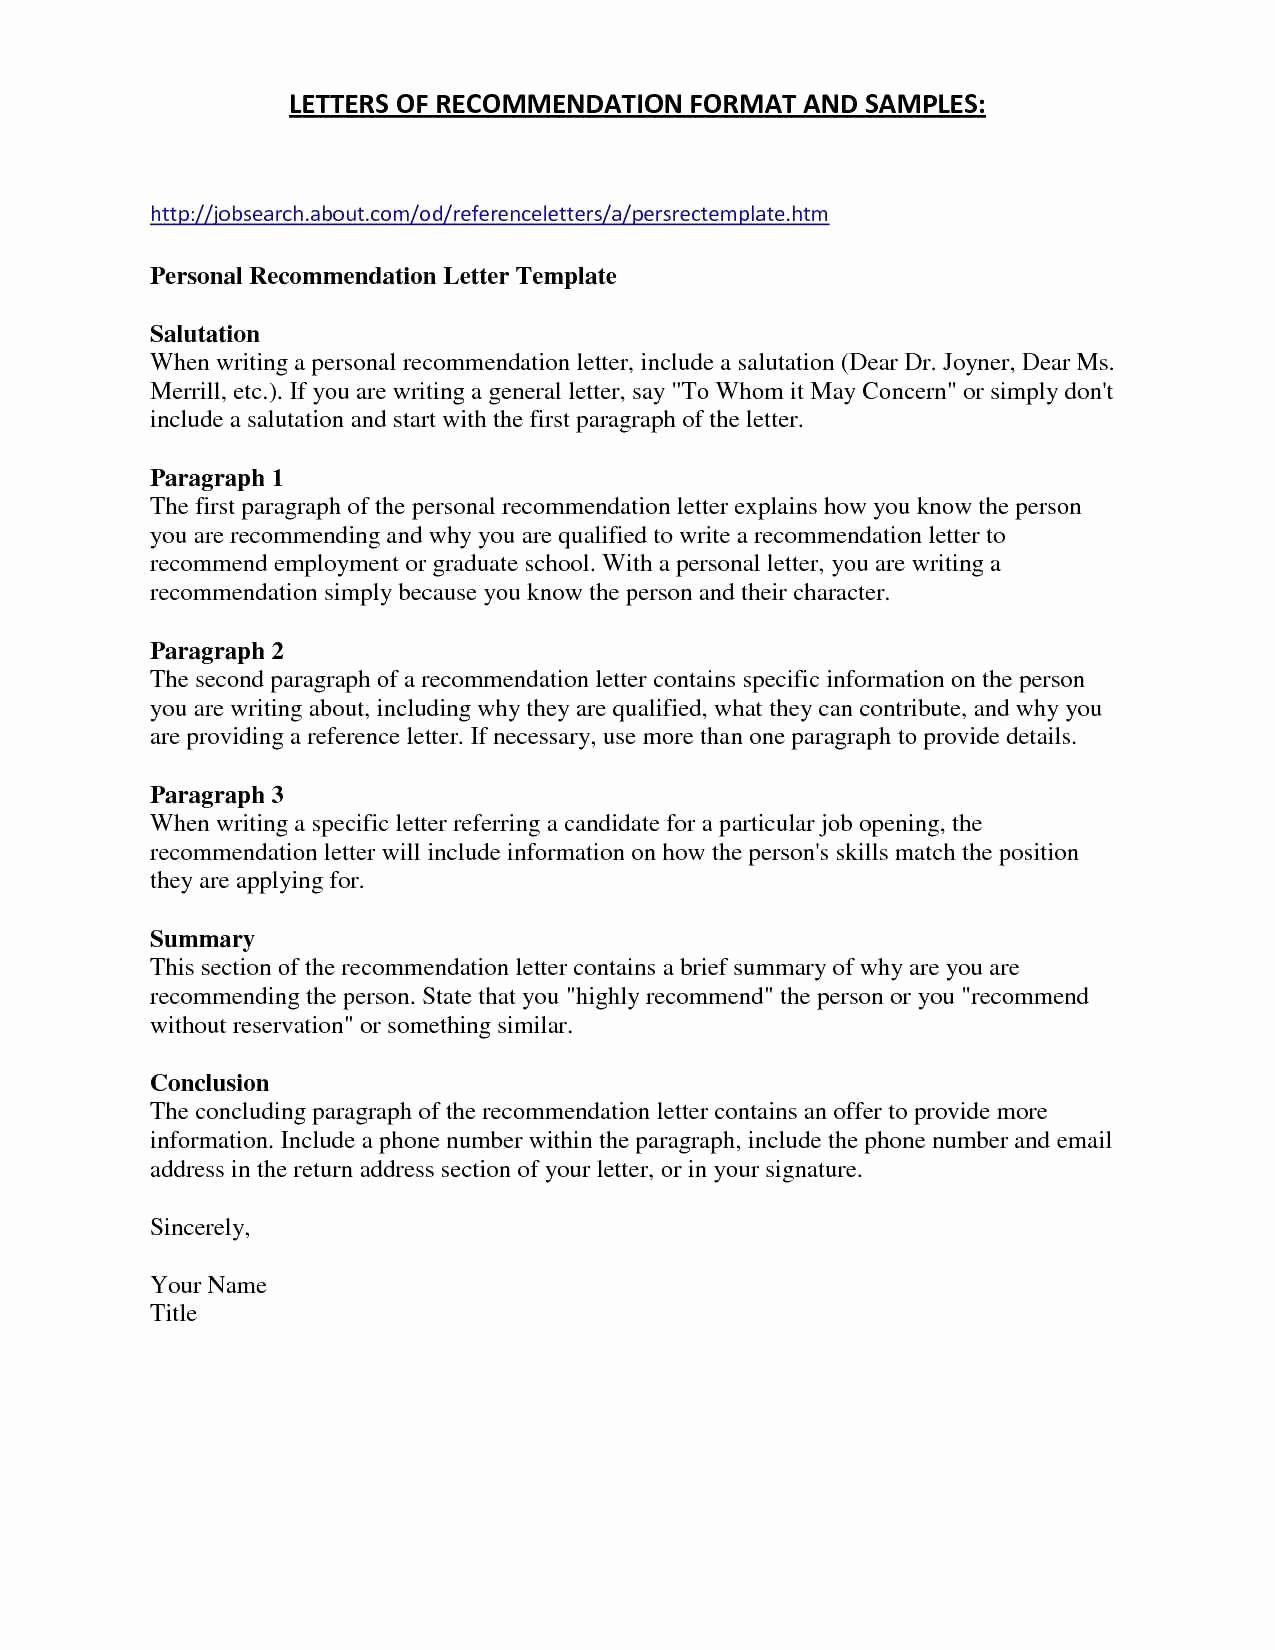 Letter Of Introduction Template for Employment - Unique Letter Introduction Template